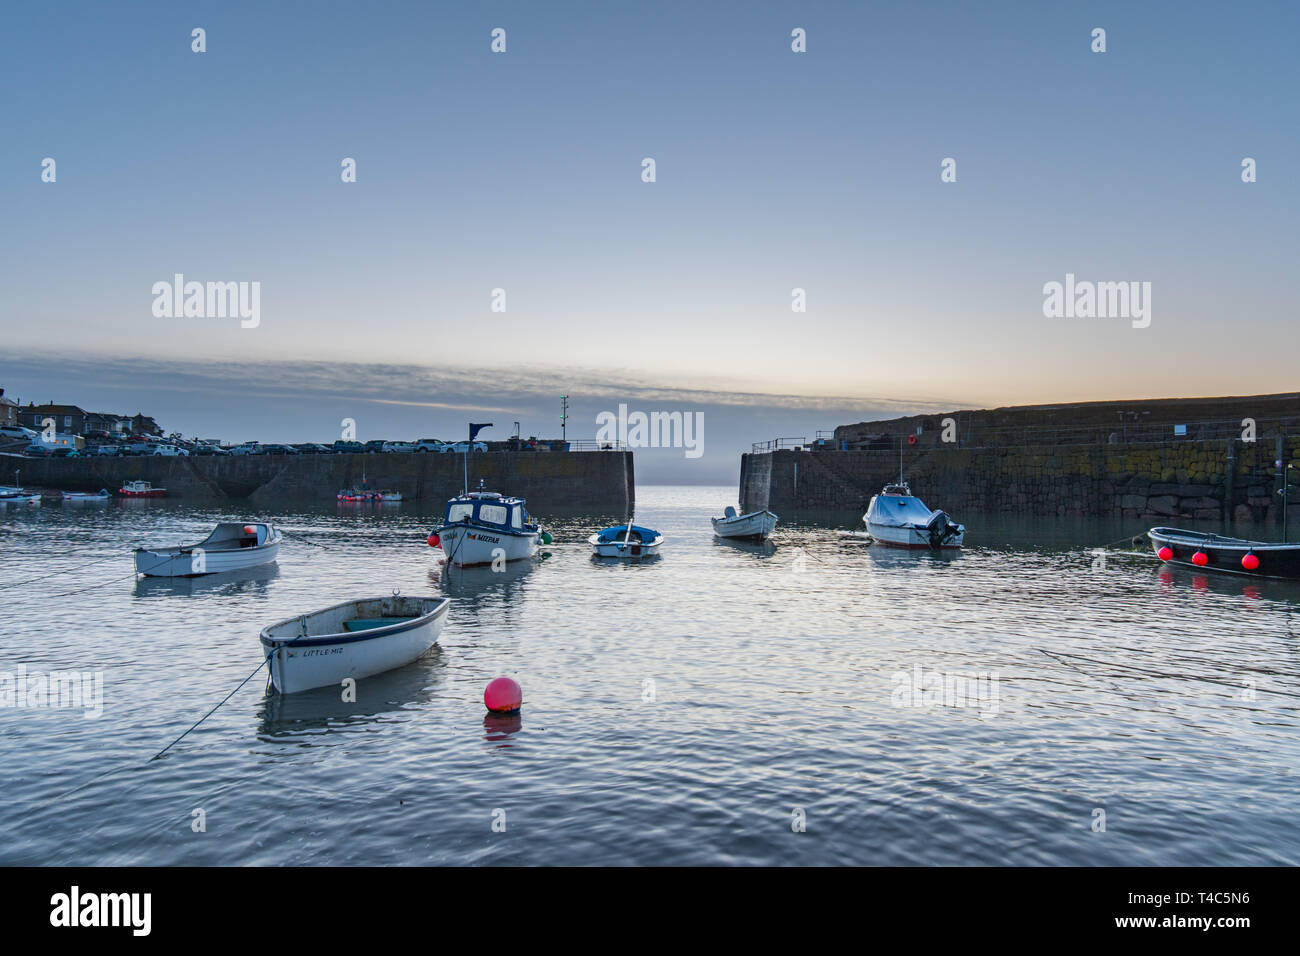 Mousehole, Cornwall, UK. 16th Apr, 2019. UK Weather. After 3 days of gale force winds and heavy rain, the weather has swung round this morning ahead of the Easter weekend. It was calm and mild at sunrise with the promise of a hot day ahead. Credit: Simon Maycock/Alamy Live News Stock Photo